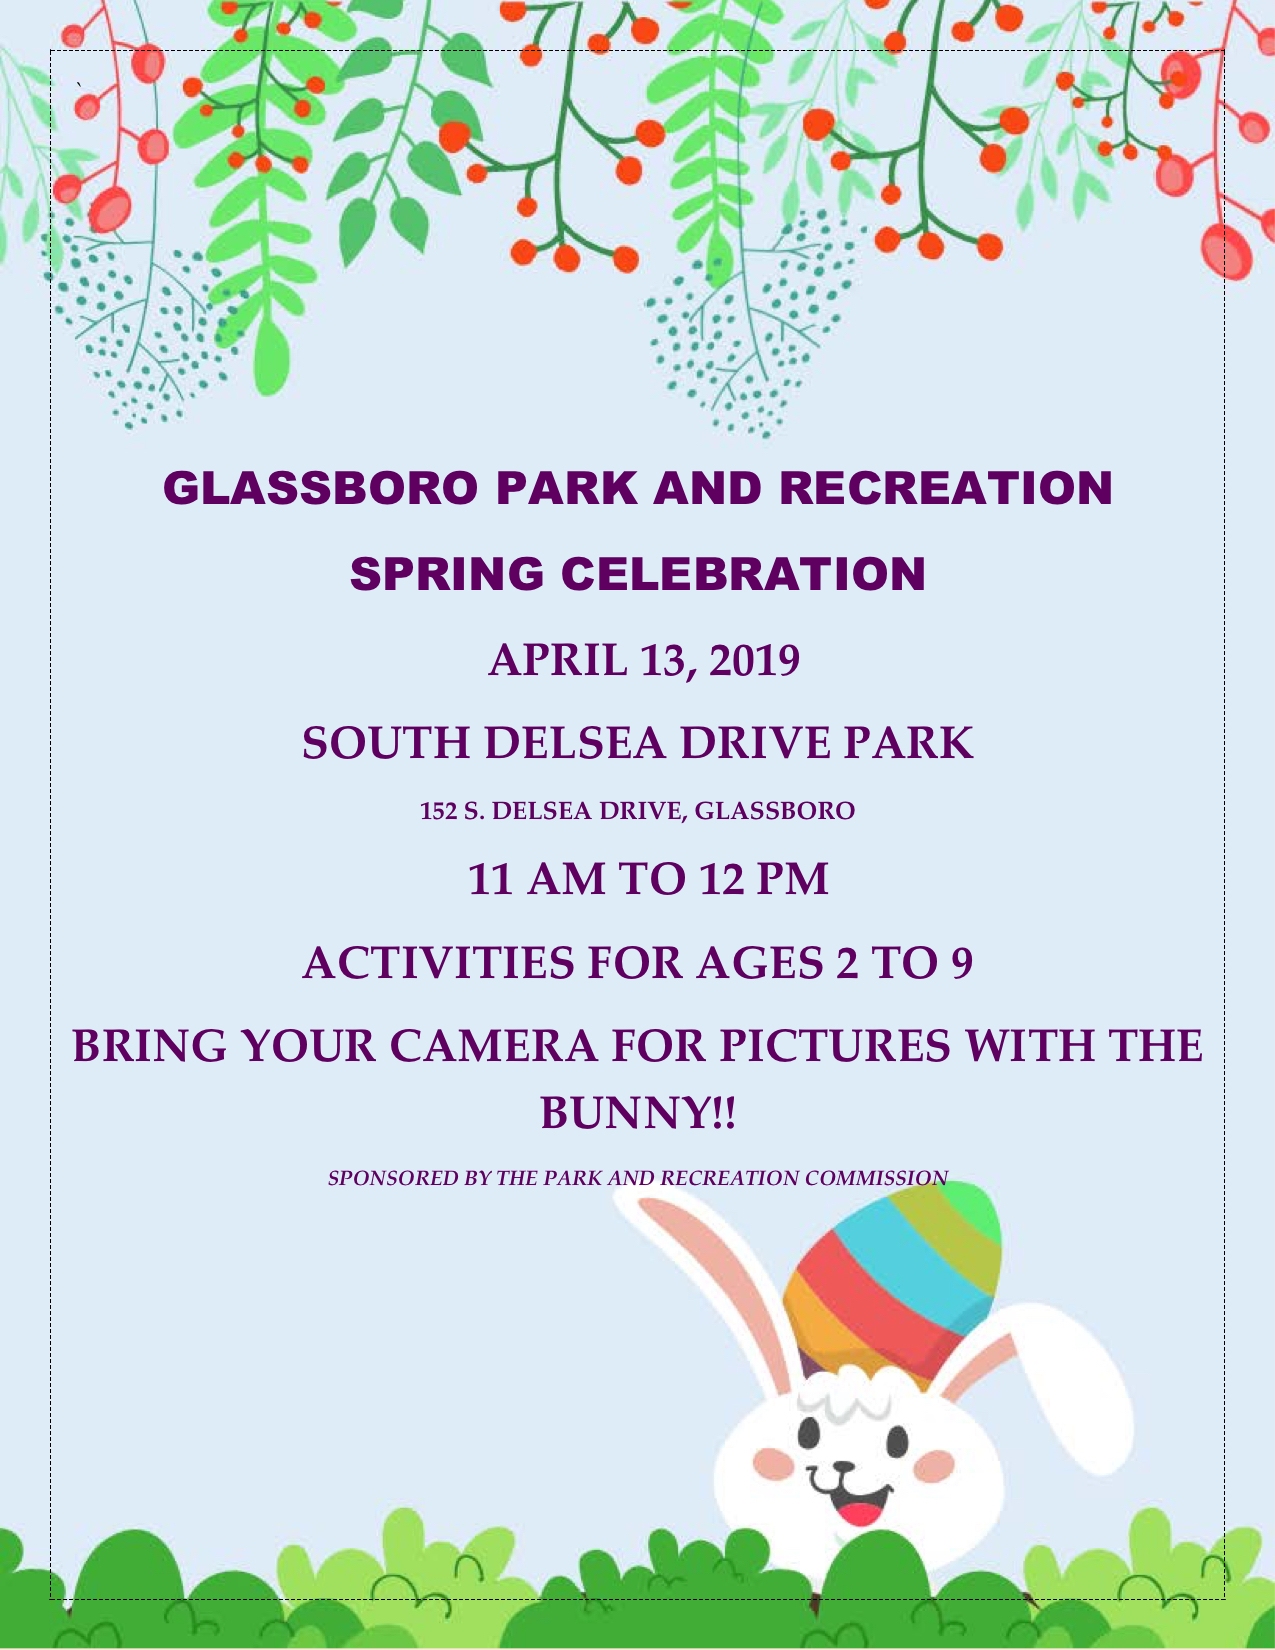 glassboro park and rec SPRING CELEBRATION 2019.jpeg